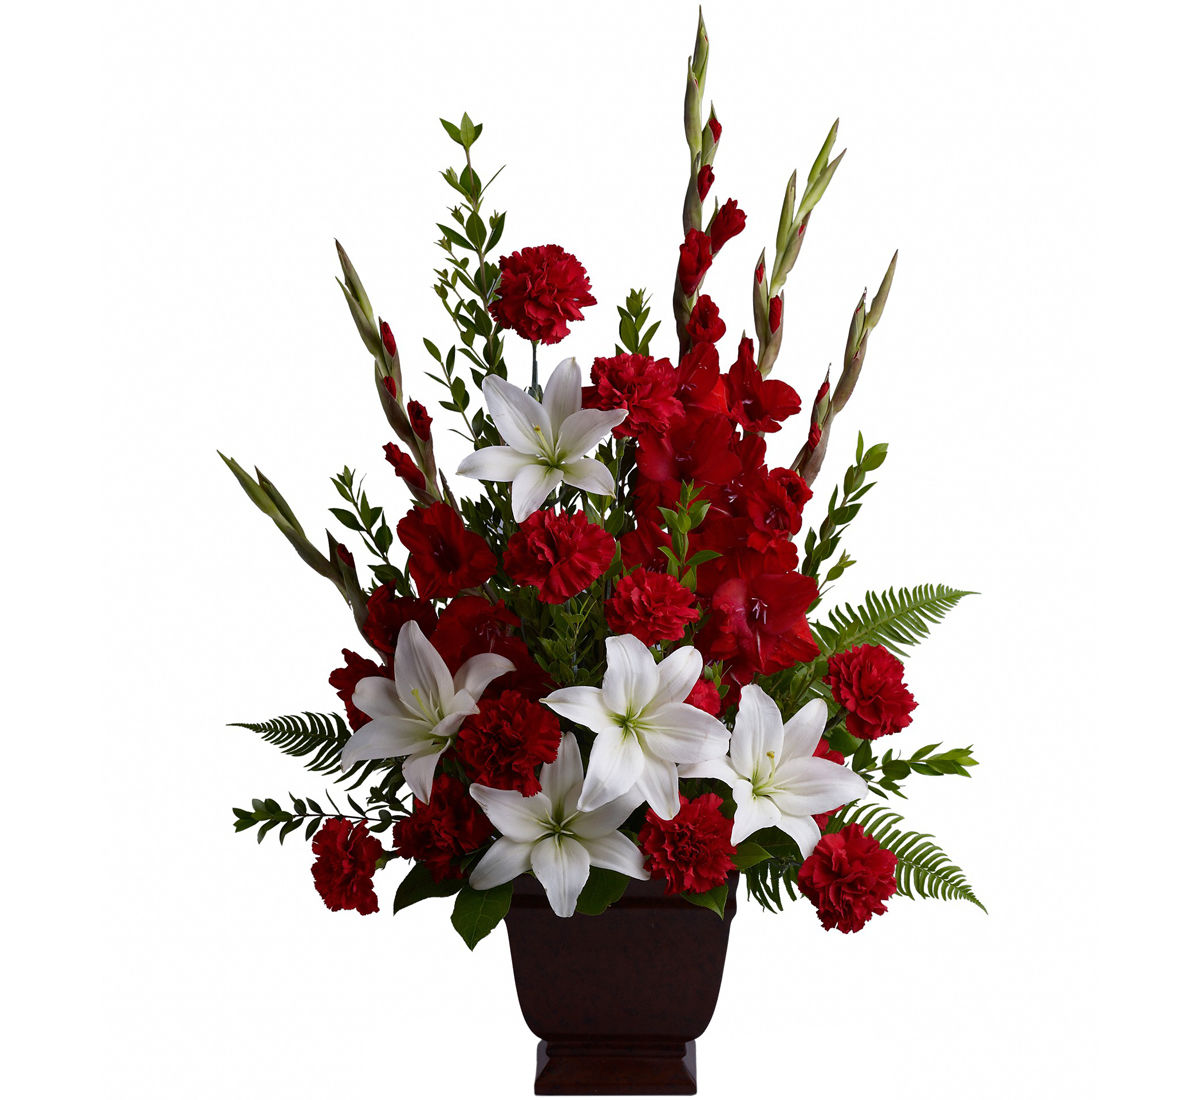 Funeral flower arrangements canada flowers tender tribute izmirmasajfo